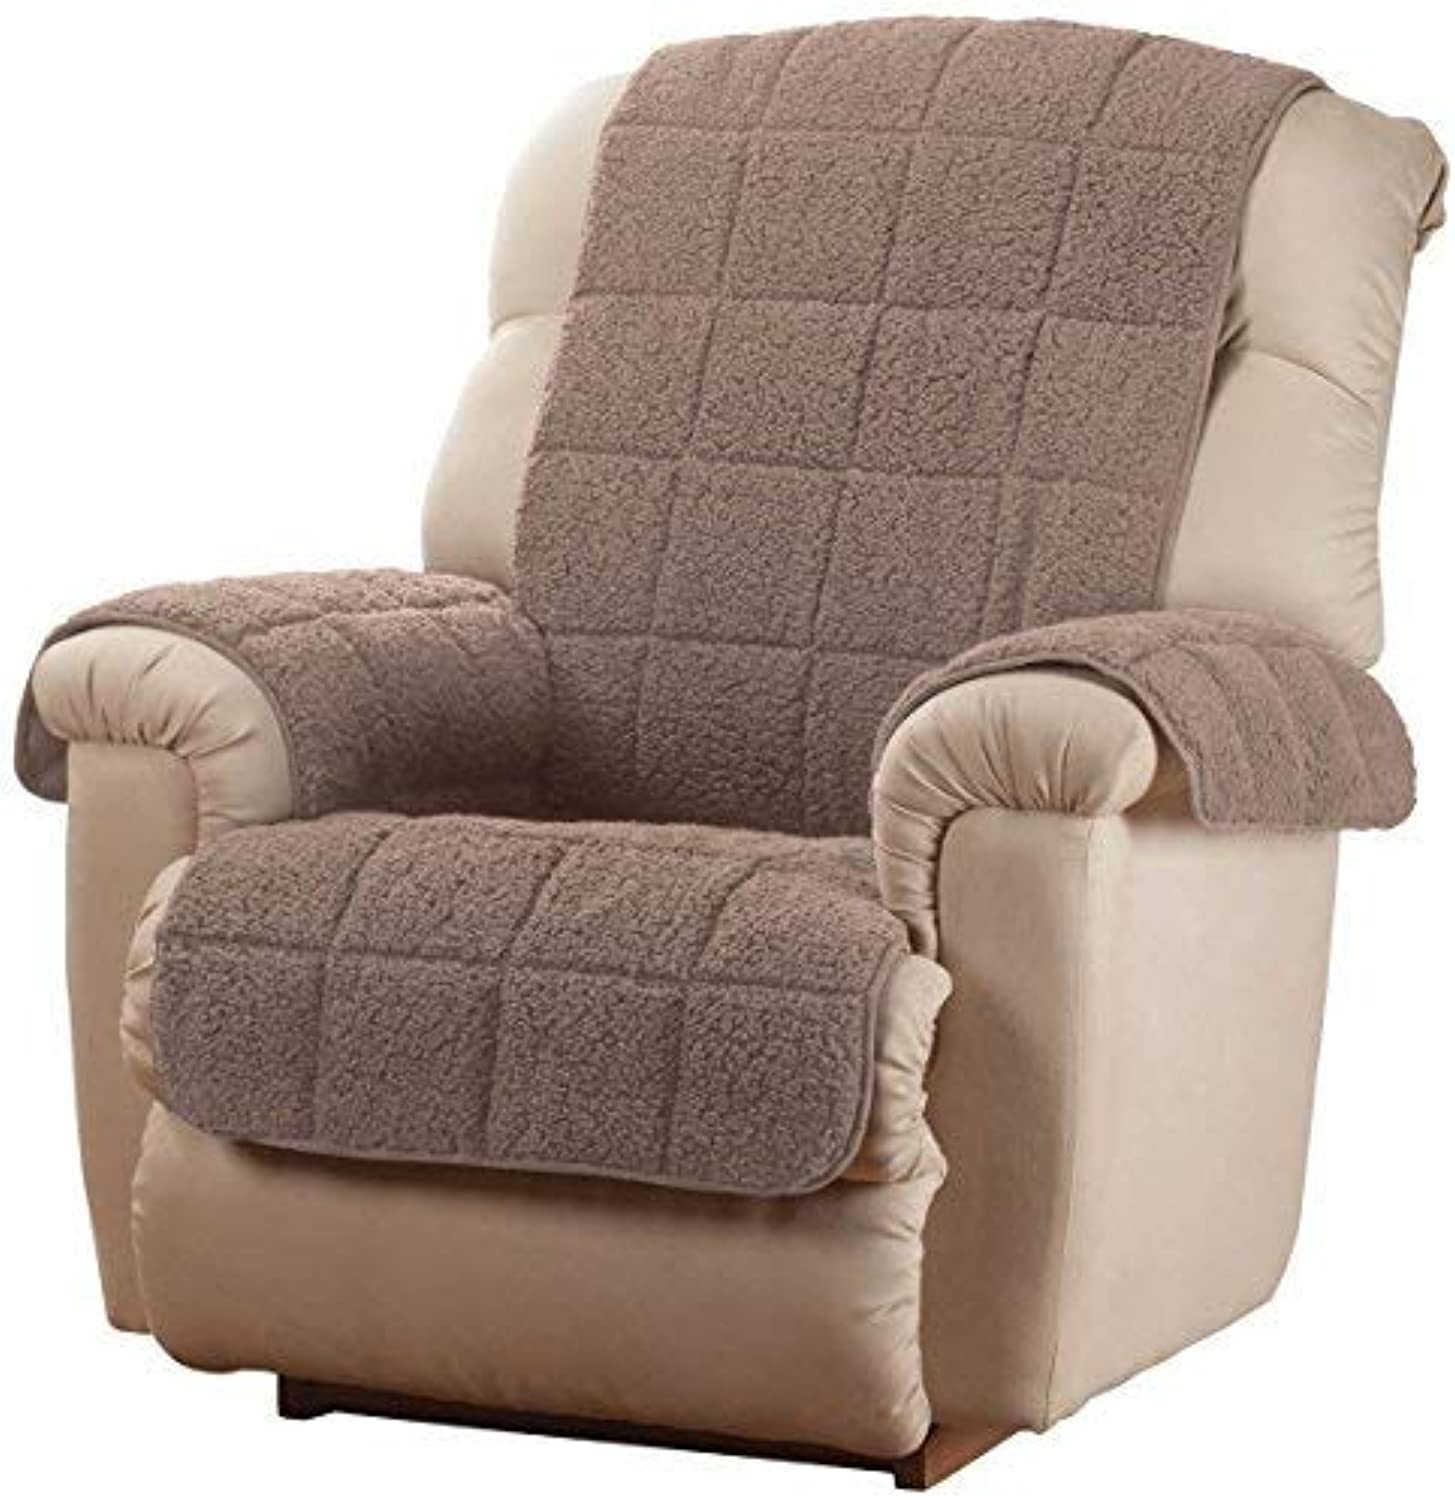 OakRidge Comforts Waterproof Quilted Sherpa Recliner Cover, Mocha